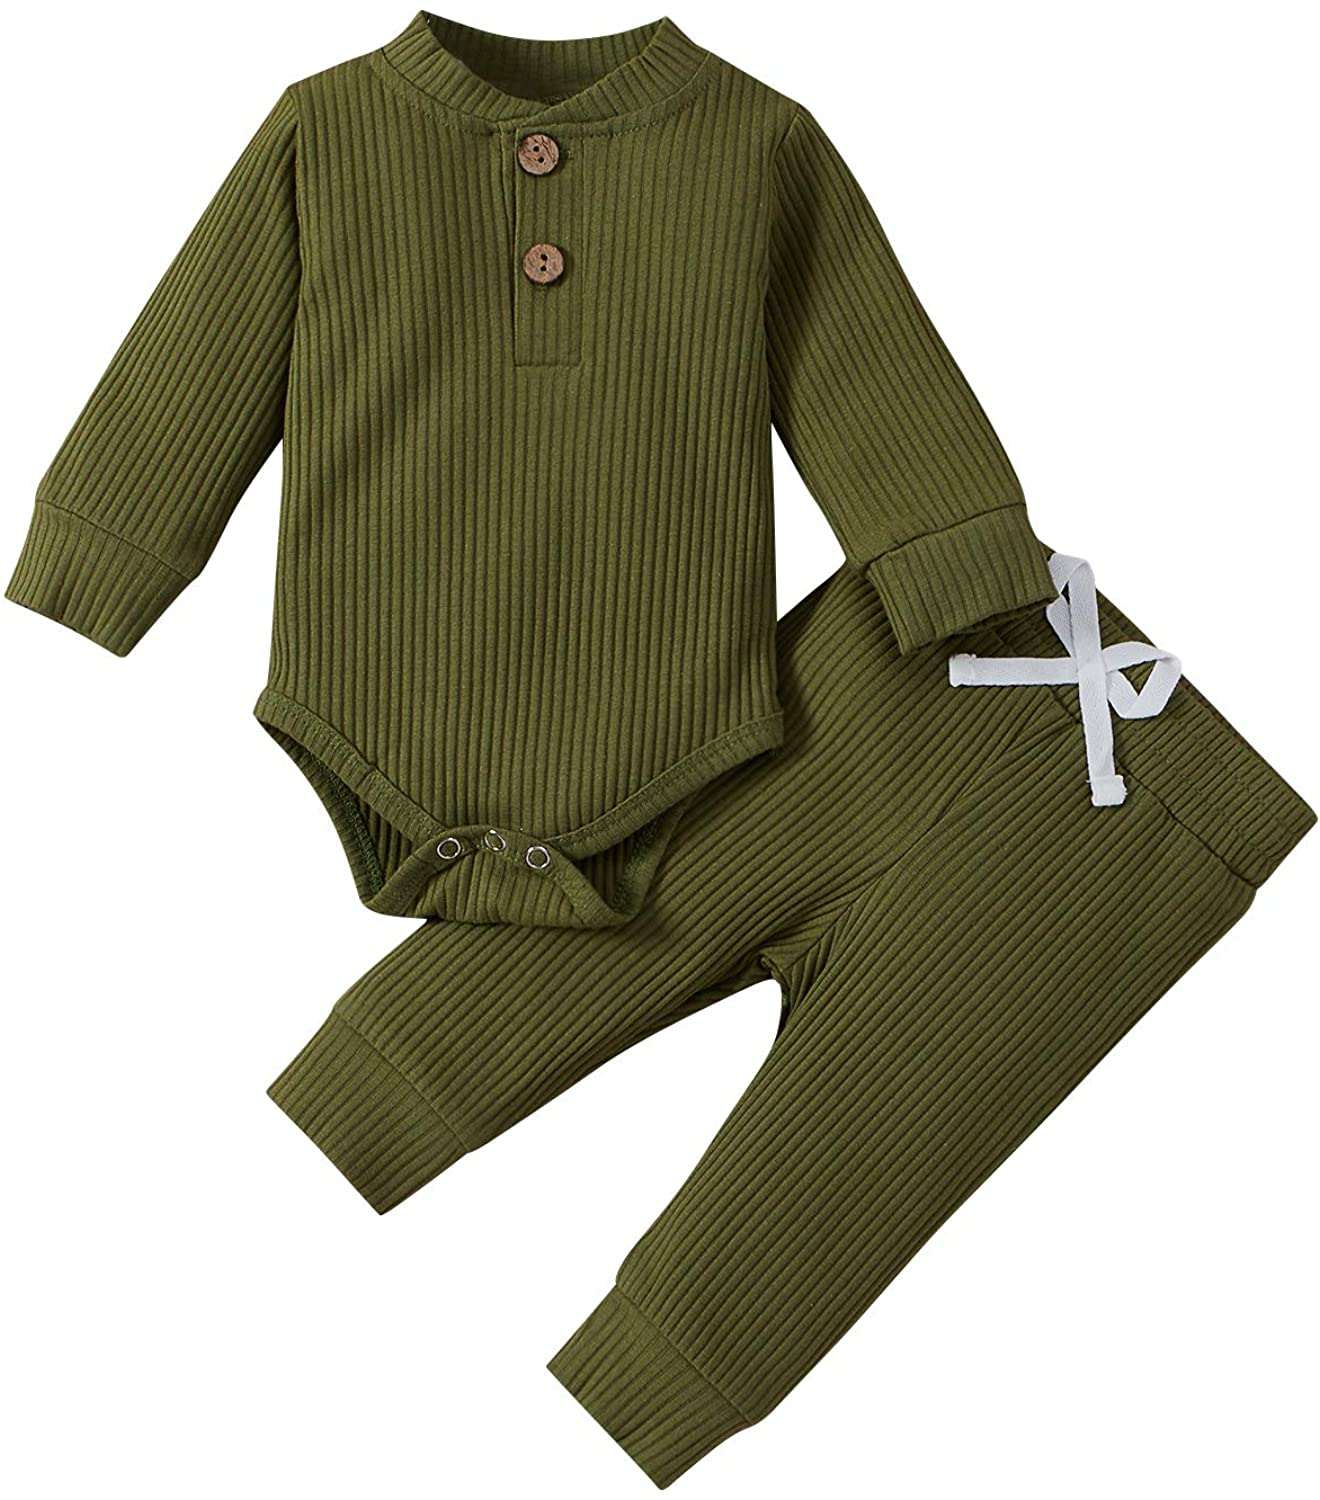 Max 44% OFF Large-scale sale Unisex Baby Pajamas Girl Boy Solid Clothes Rom Long Sleeve